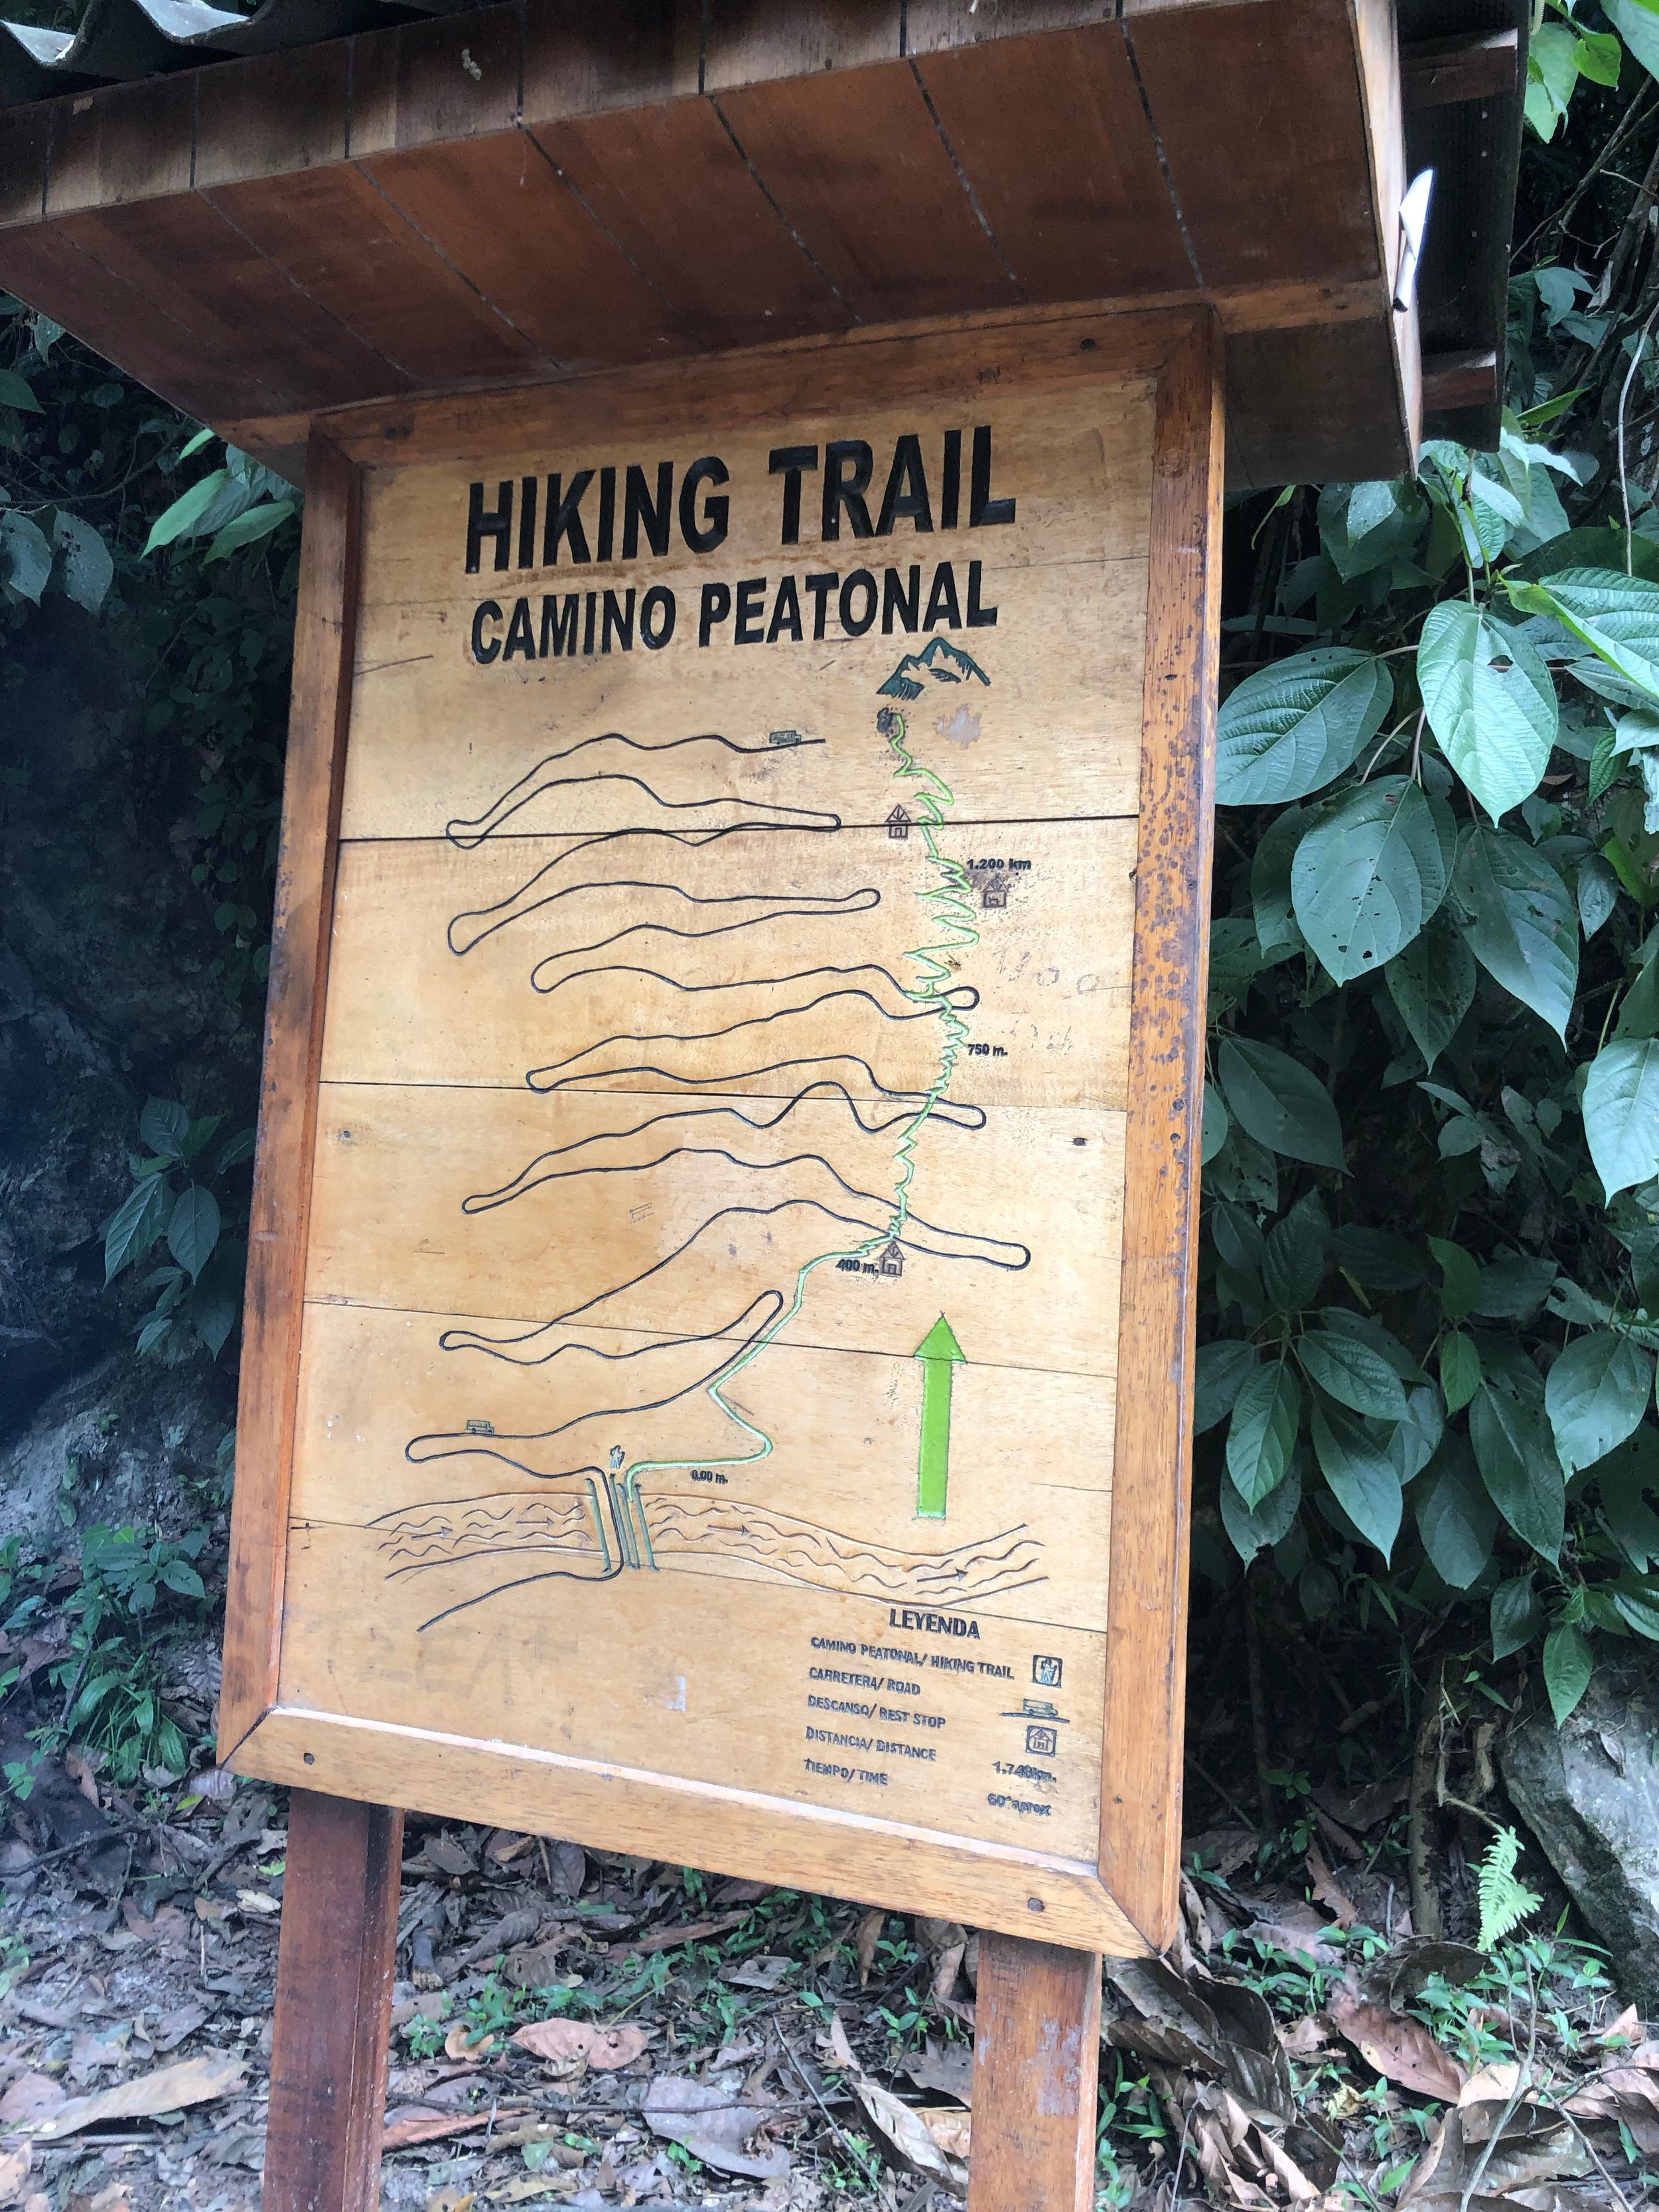 Hiking Trail Map (main road for vehicles in black, hiking trail in green)